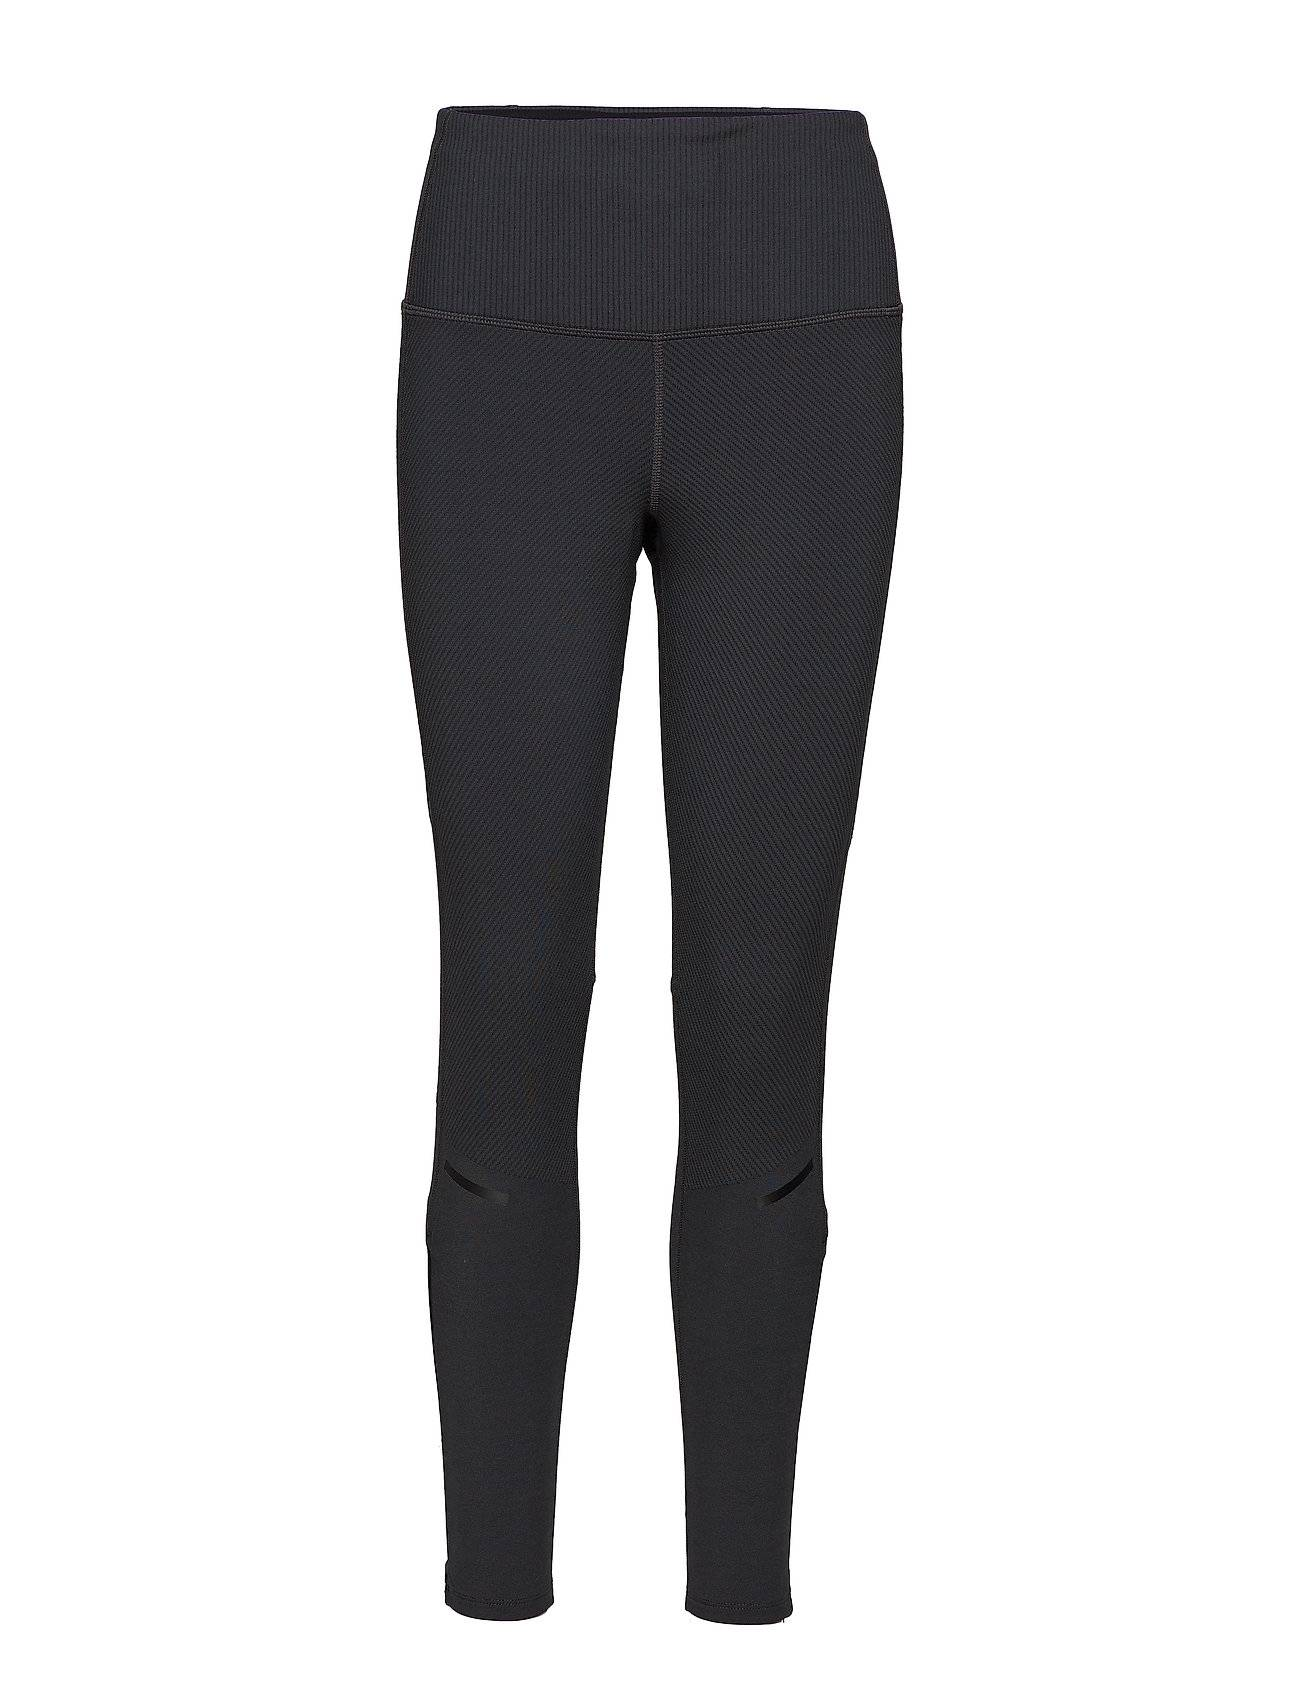 Image of adidas Performance Ultra Tight W Running/training Tights Musta Adidas Performance